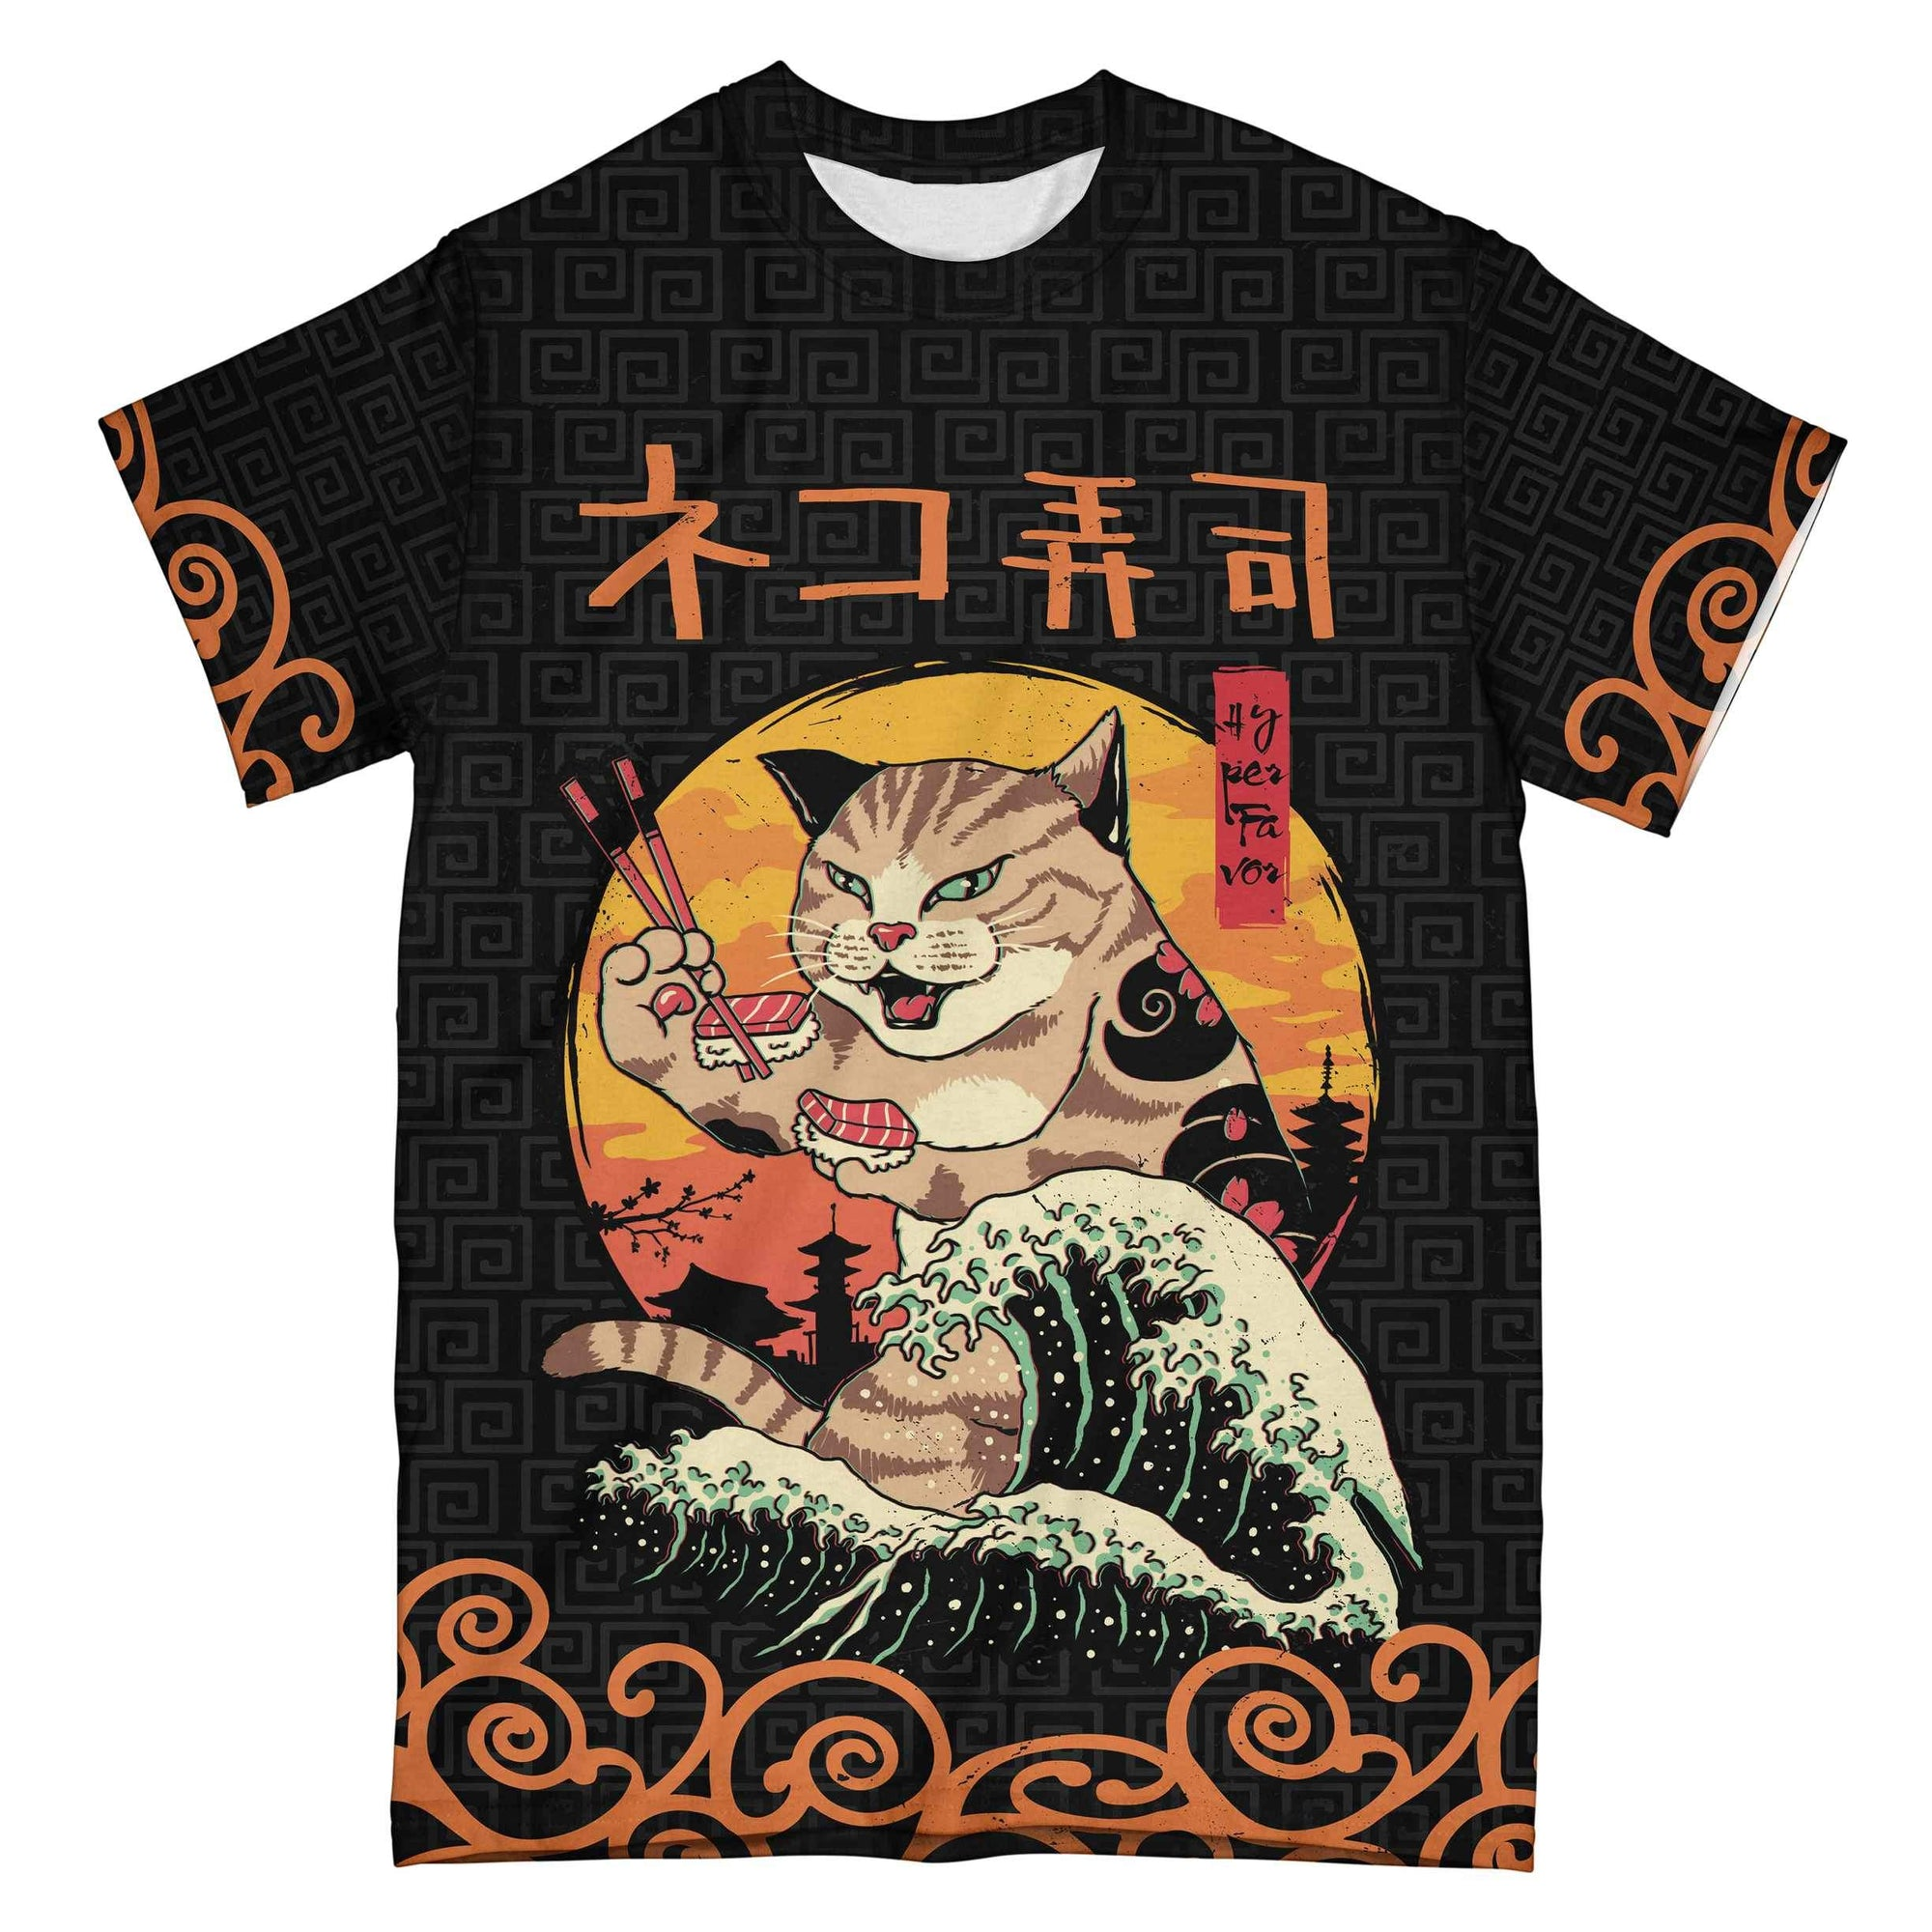 Neko Sushi Japanese Retro EZ07 2305 All Over T-shirt